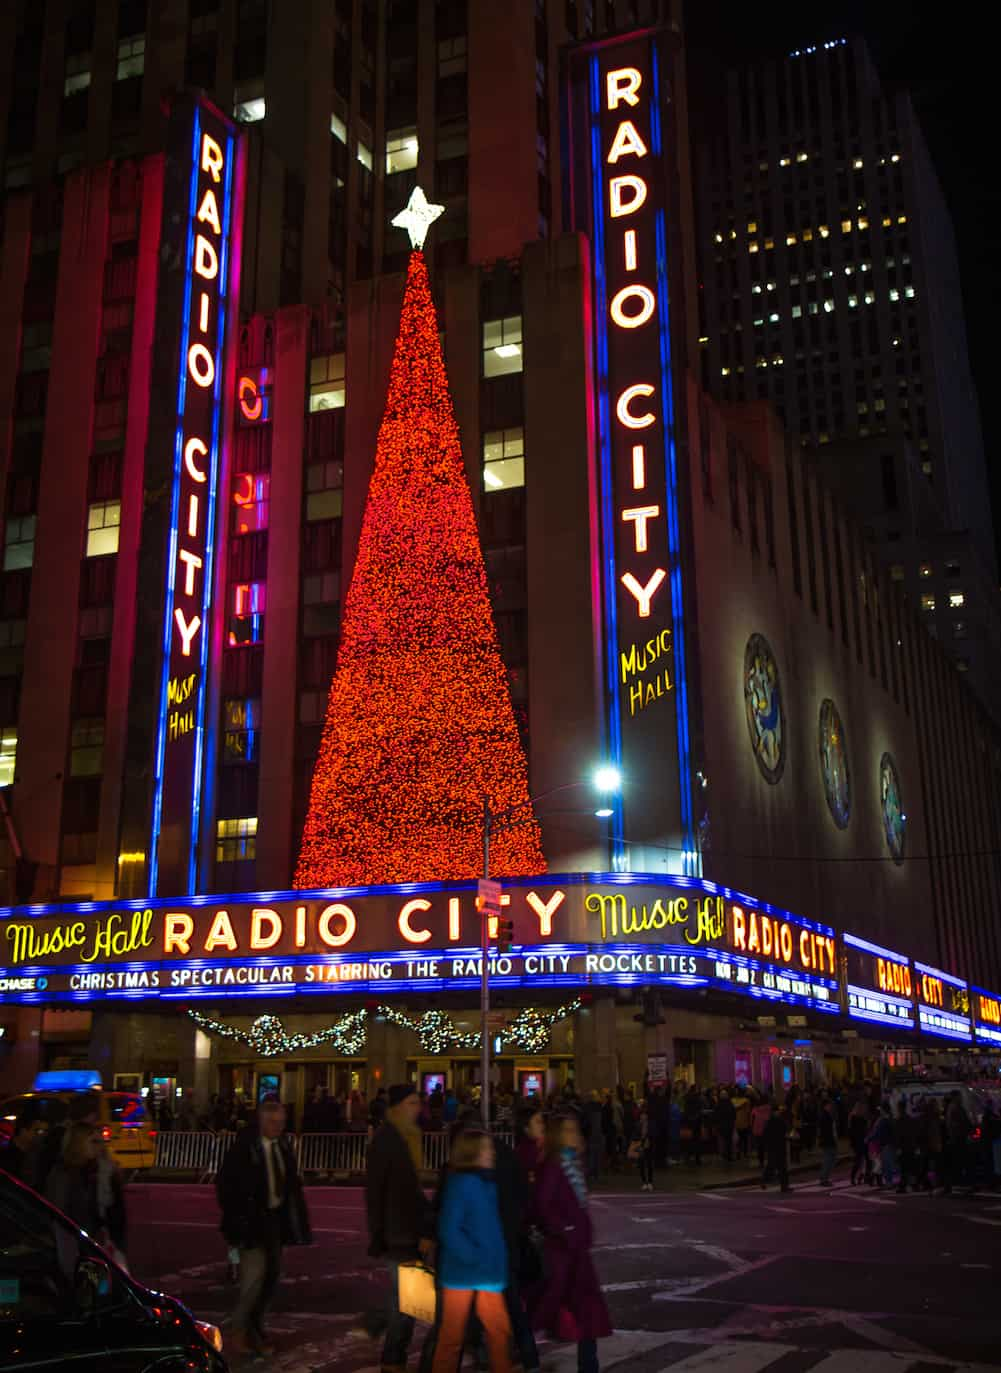 NYC Christmas: Free Walking Tour (Radio City Music Hall)